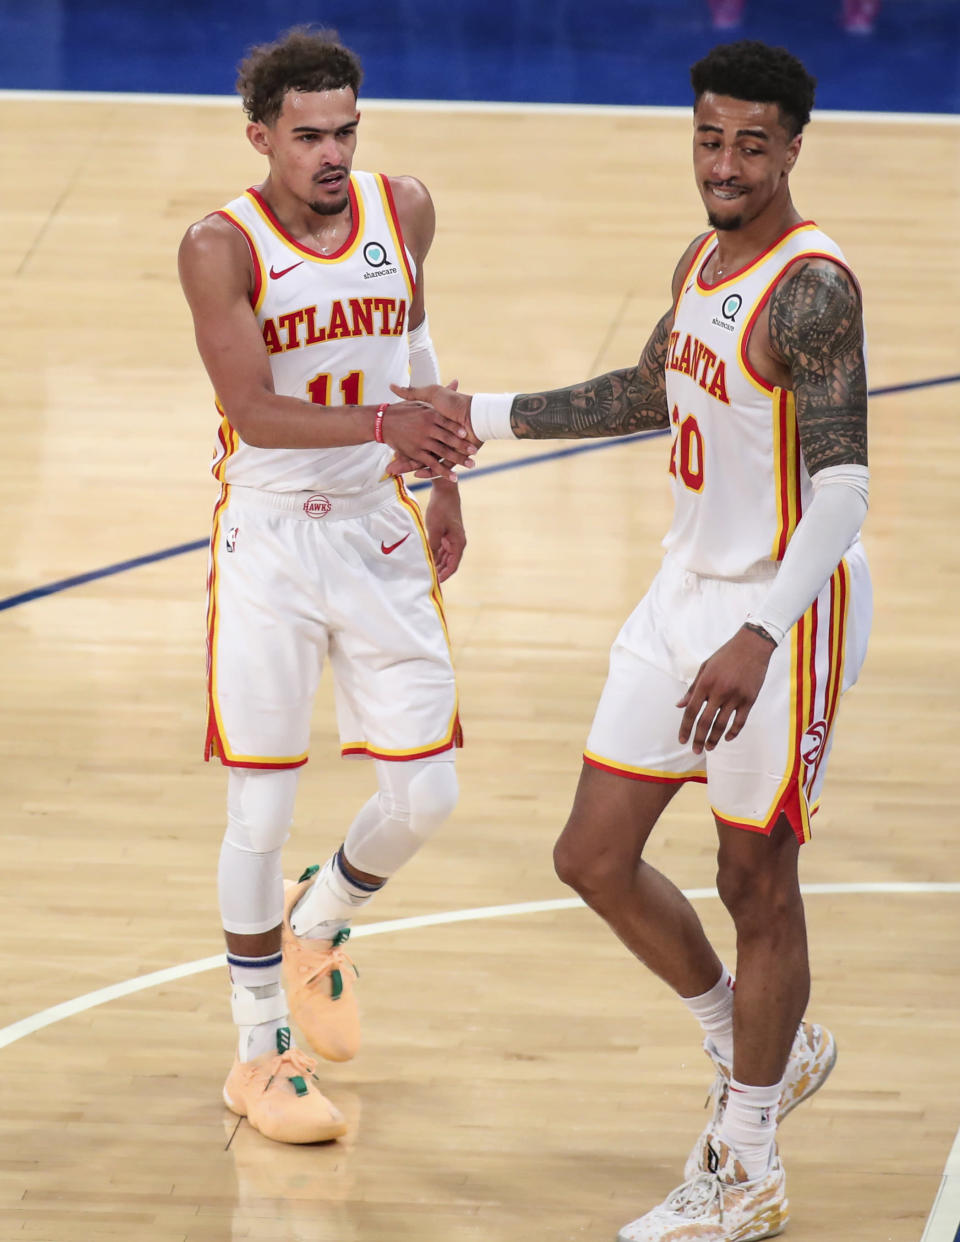 Atlanta Hawks guard Trae Young (11) and forward John Collins (20) congratulate each other after defeating the New York Knicks 103-89 in Game 5 of an NBA basketball first-round playoff series Wednesday, June 2, 2021, in New York. (Wendell Cruz/Pool Photo via AP)